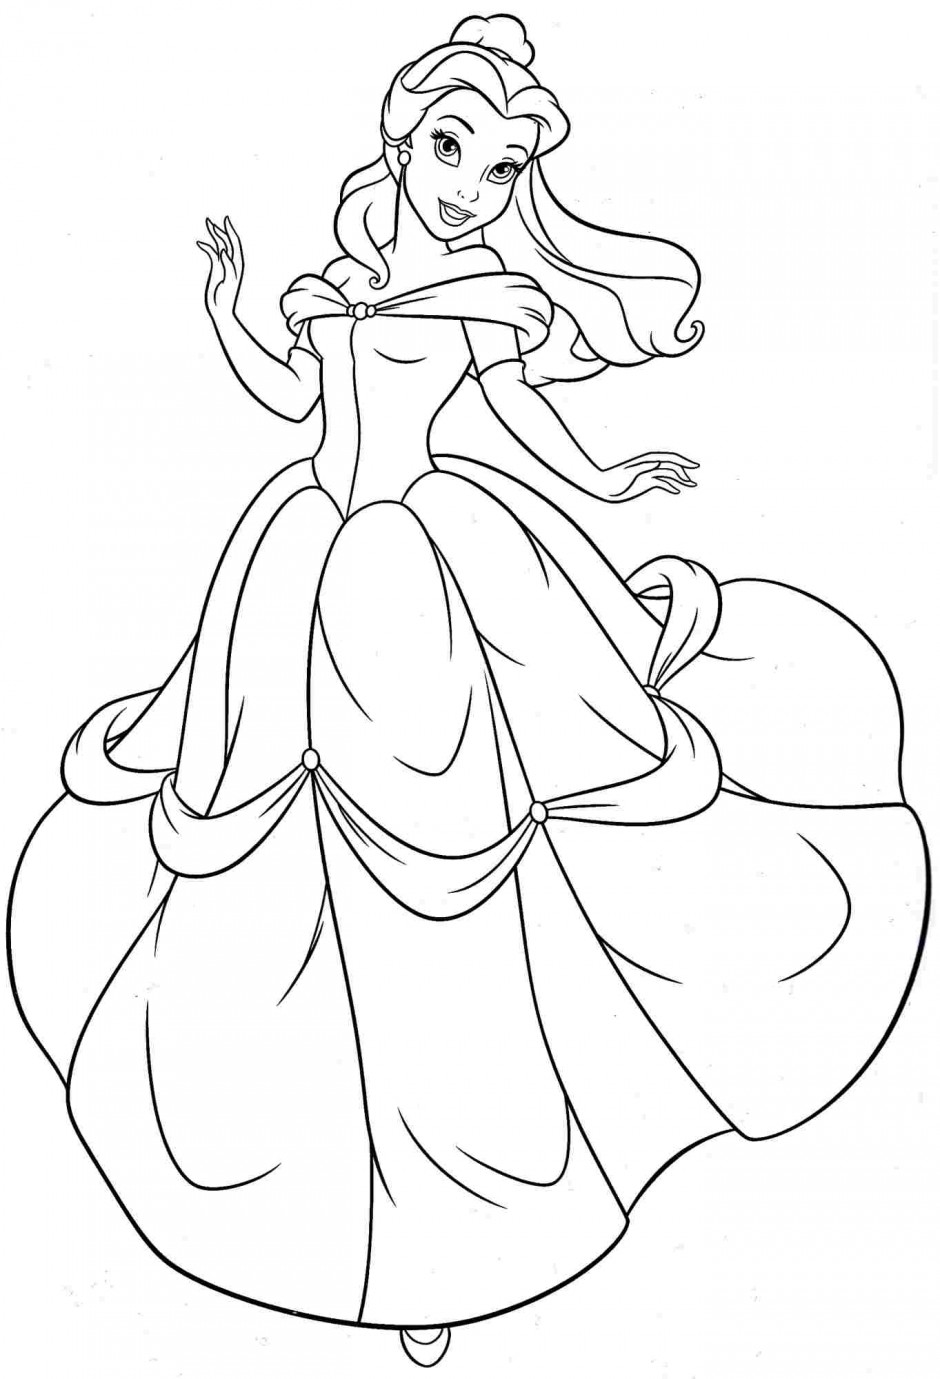 belle coloring pages free free printable belle coloring pages for kids belle free coloring pages